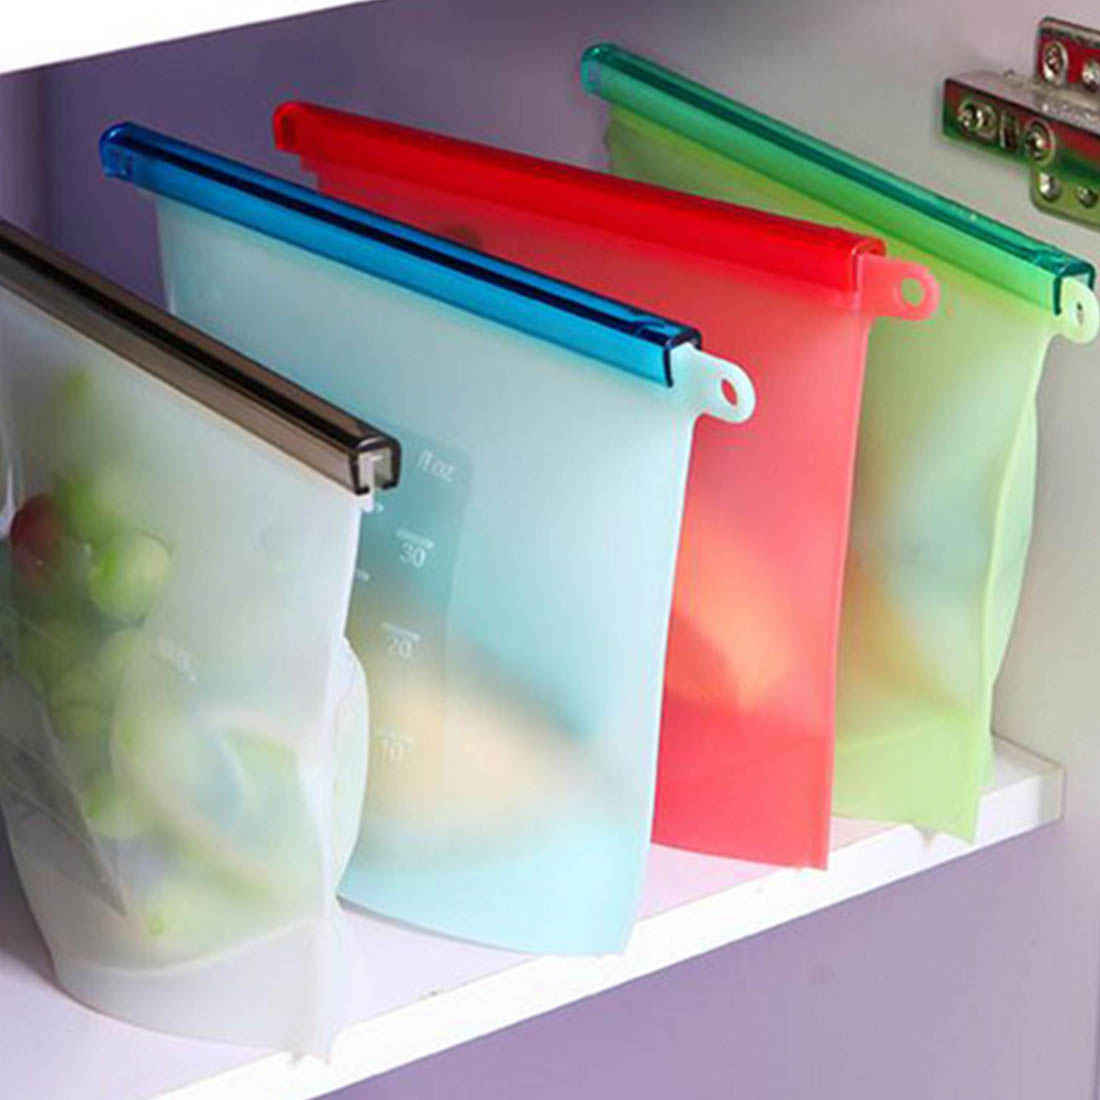 2016 NEW Reusable Vacuum Food Sealer Bags Silicone Food Storage Container Refrigerator Bag Kitchen Colored Ziplock Bags-in Storage Bags from Home u0026 Garden ... & 2016 NEW Reusable Vacuum Food Sealer Bags Silicone Food Storage ...